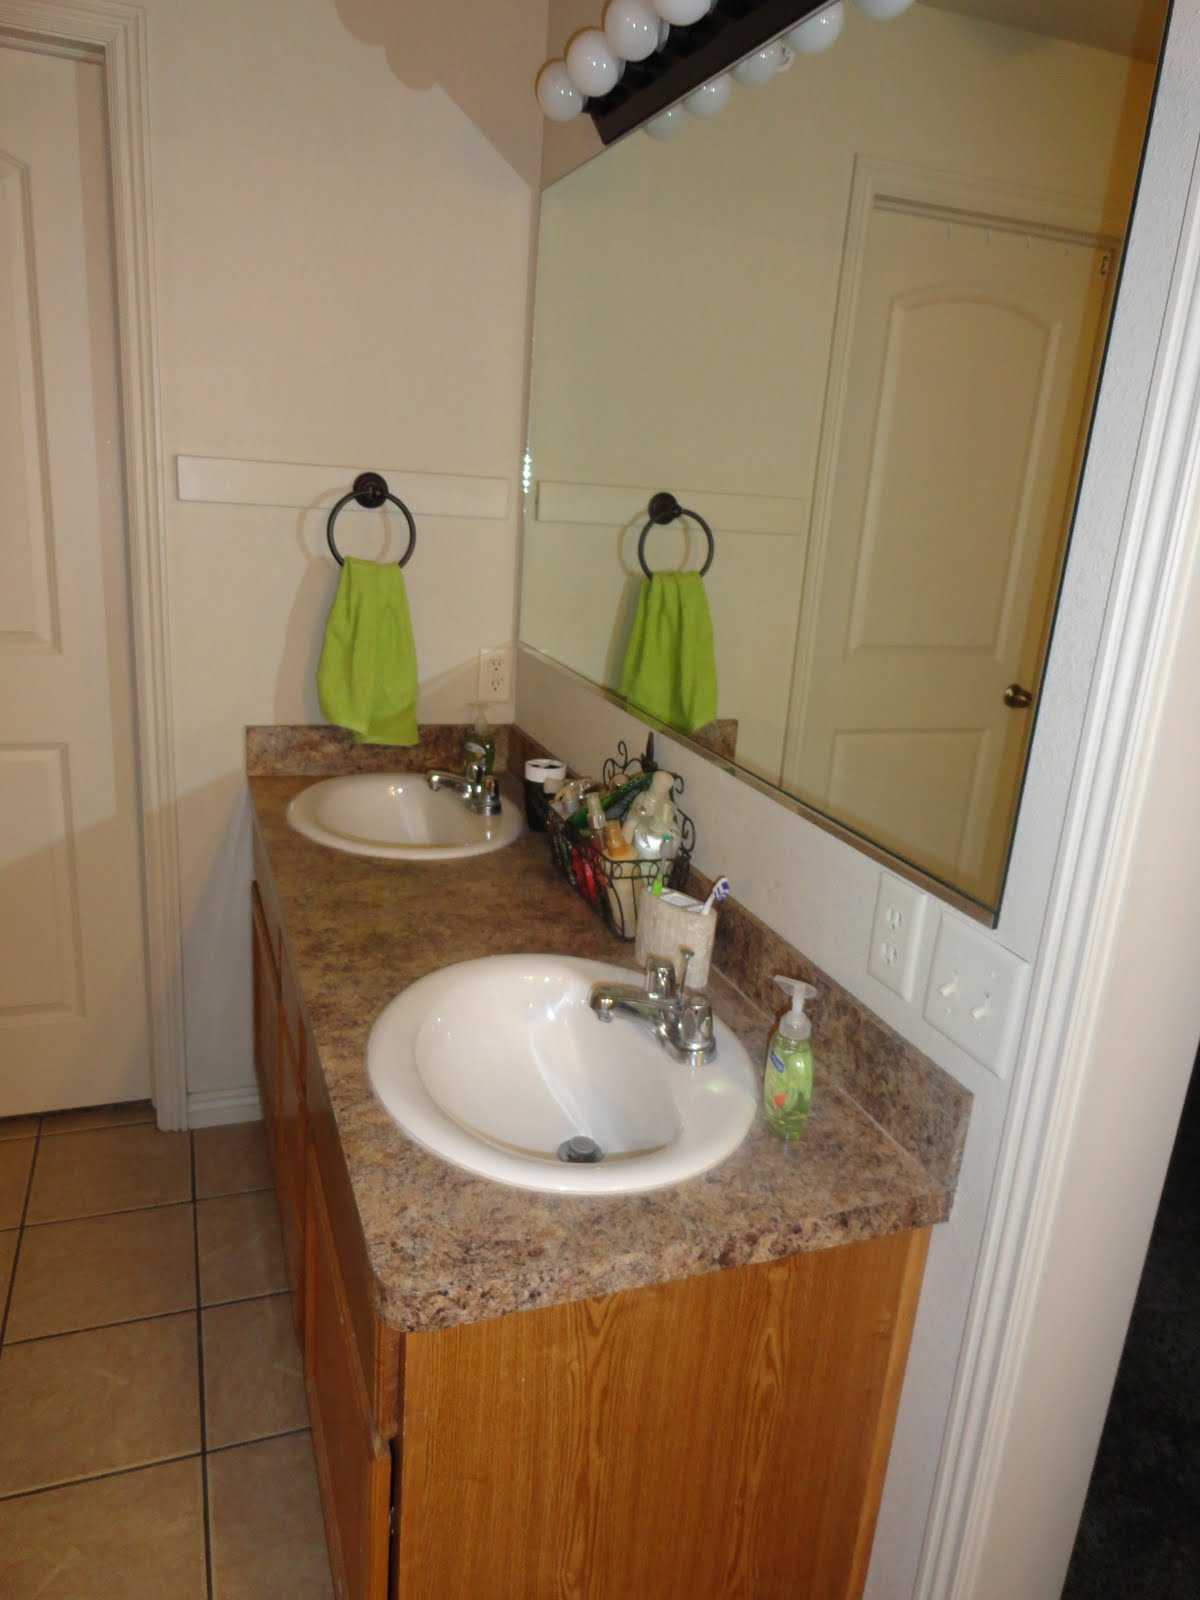 and two sinks, mirrors, and cabinets like this. title=